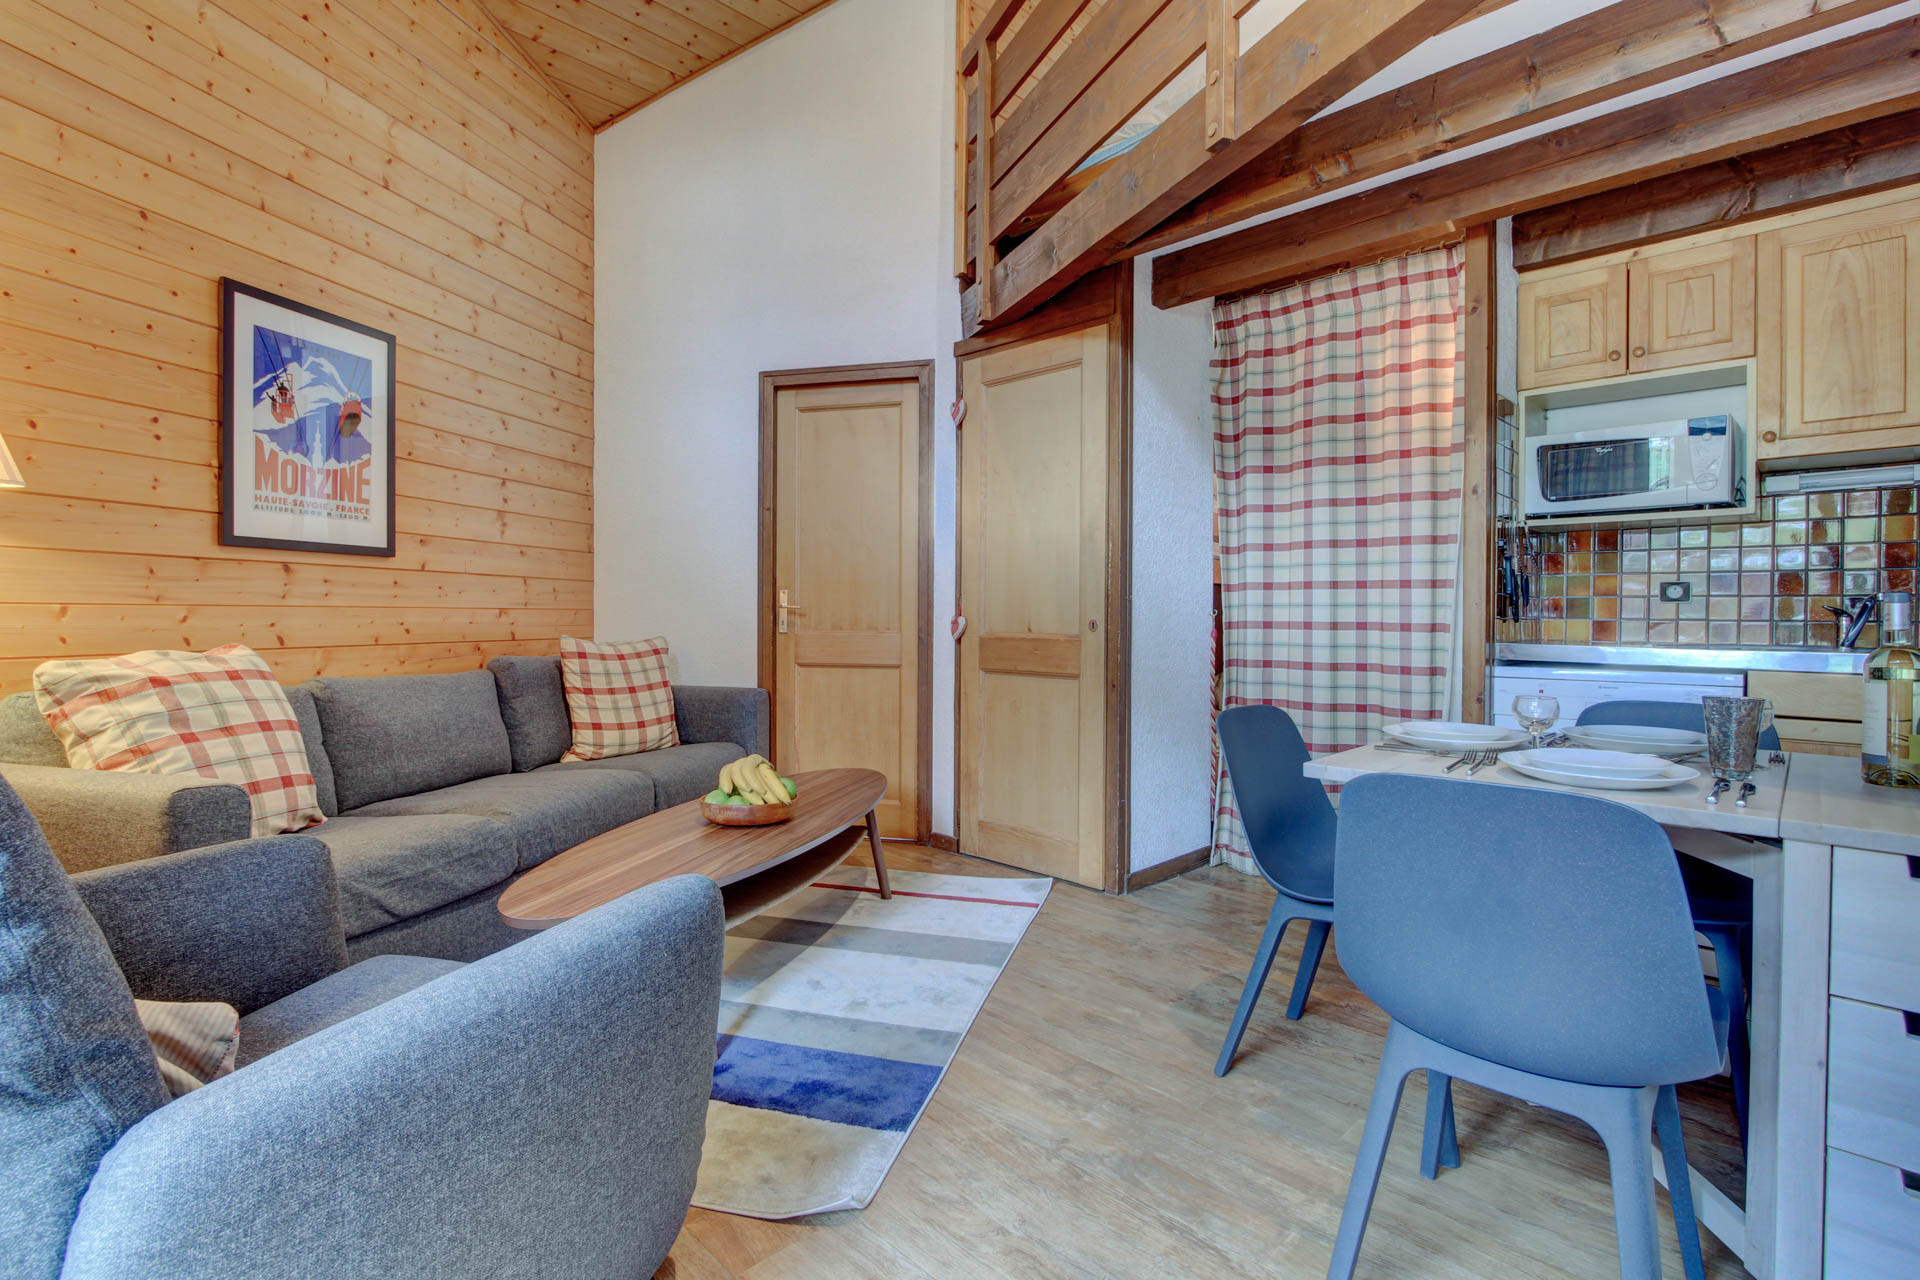 La Corniche - Apartments in Morzine